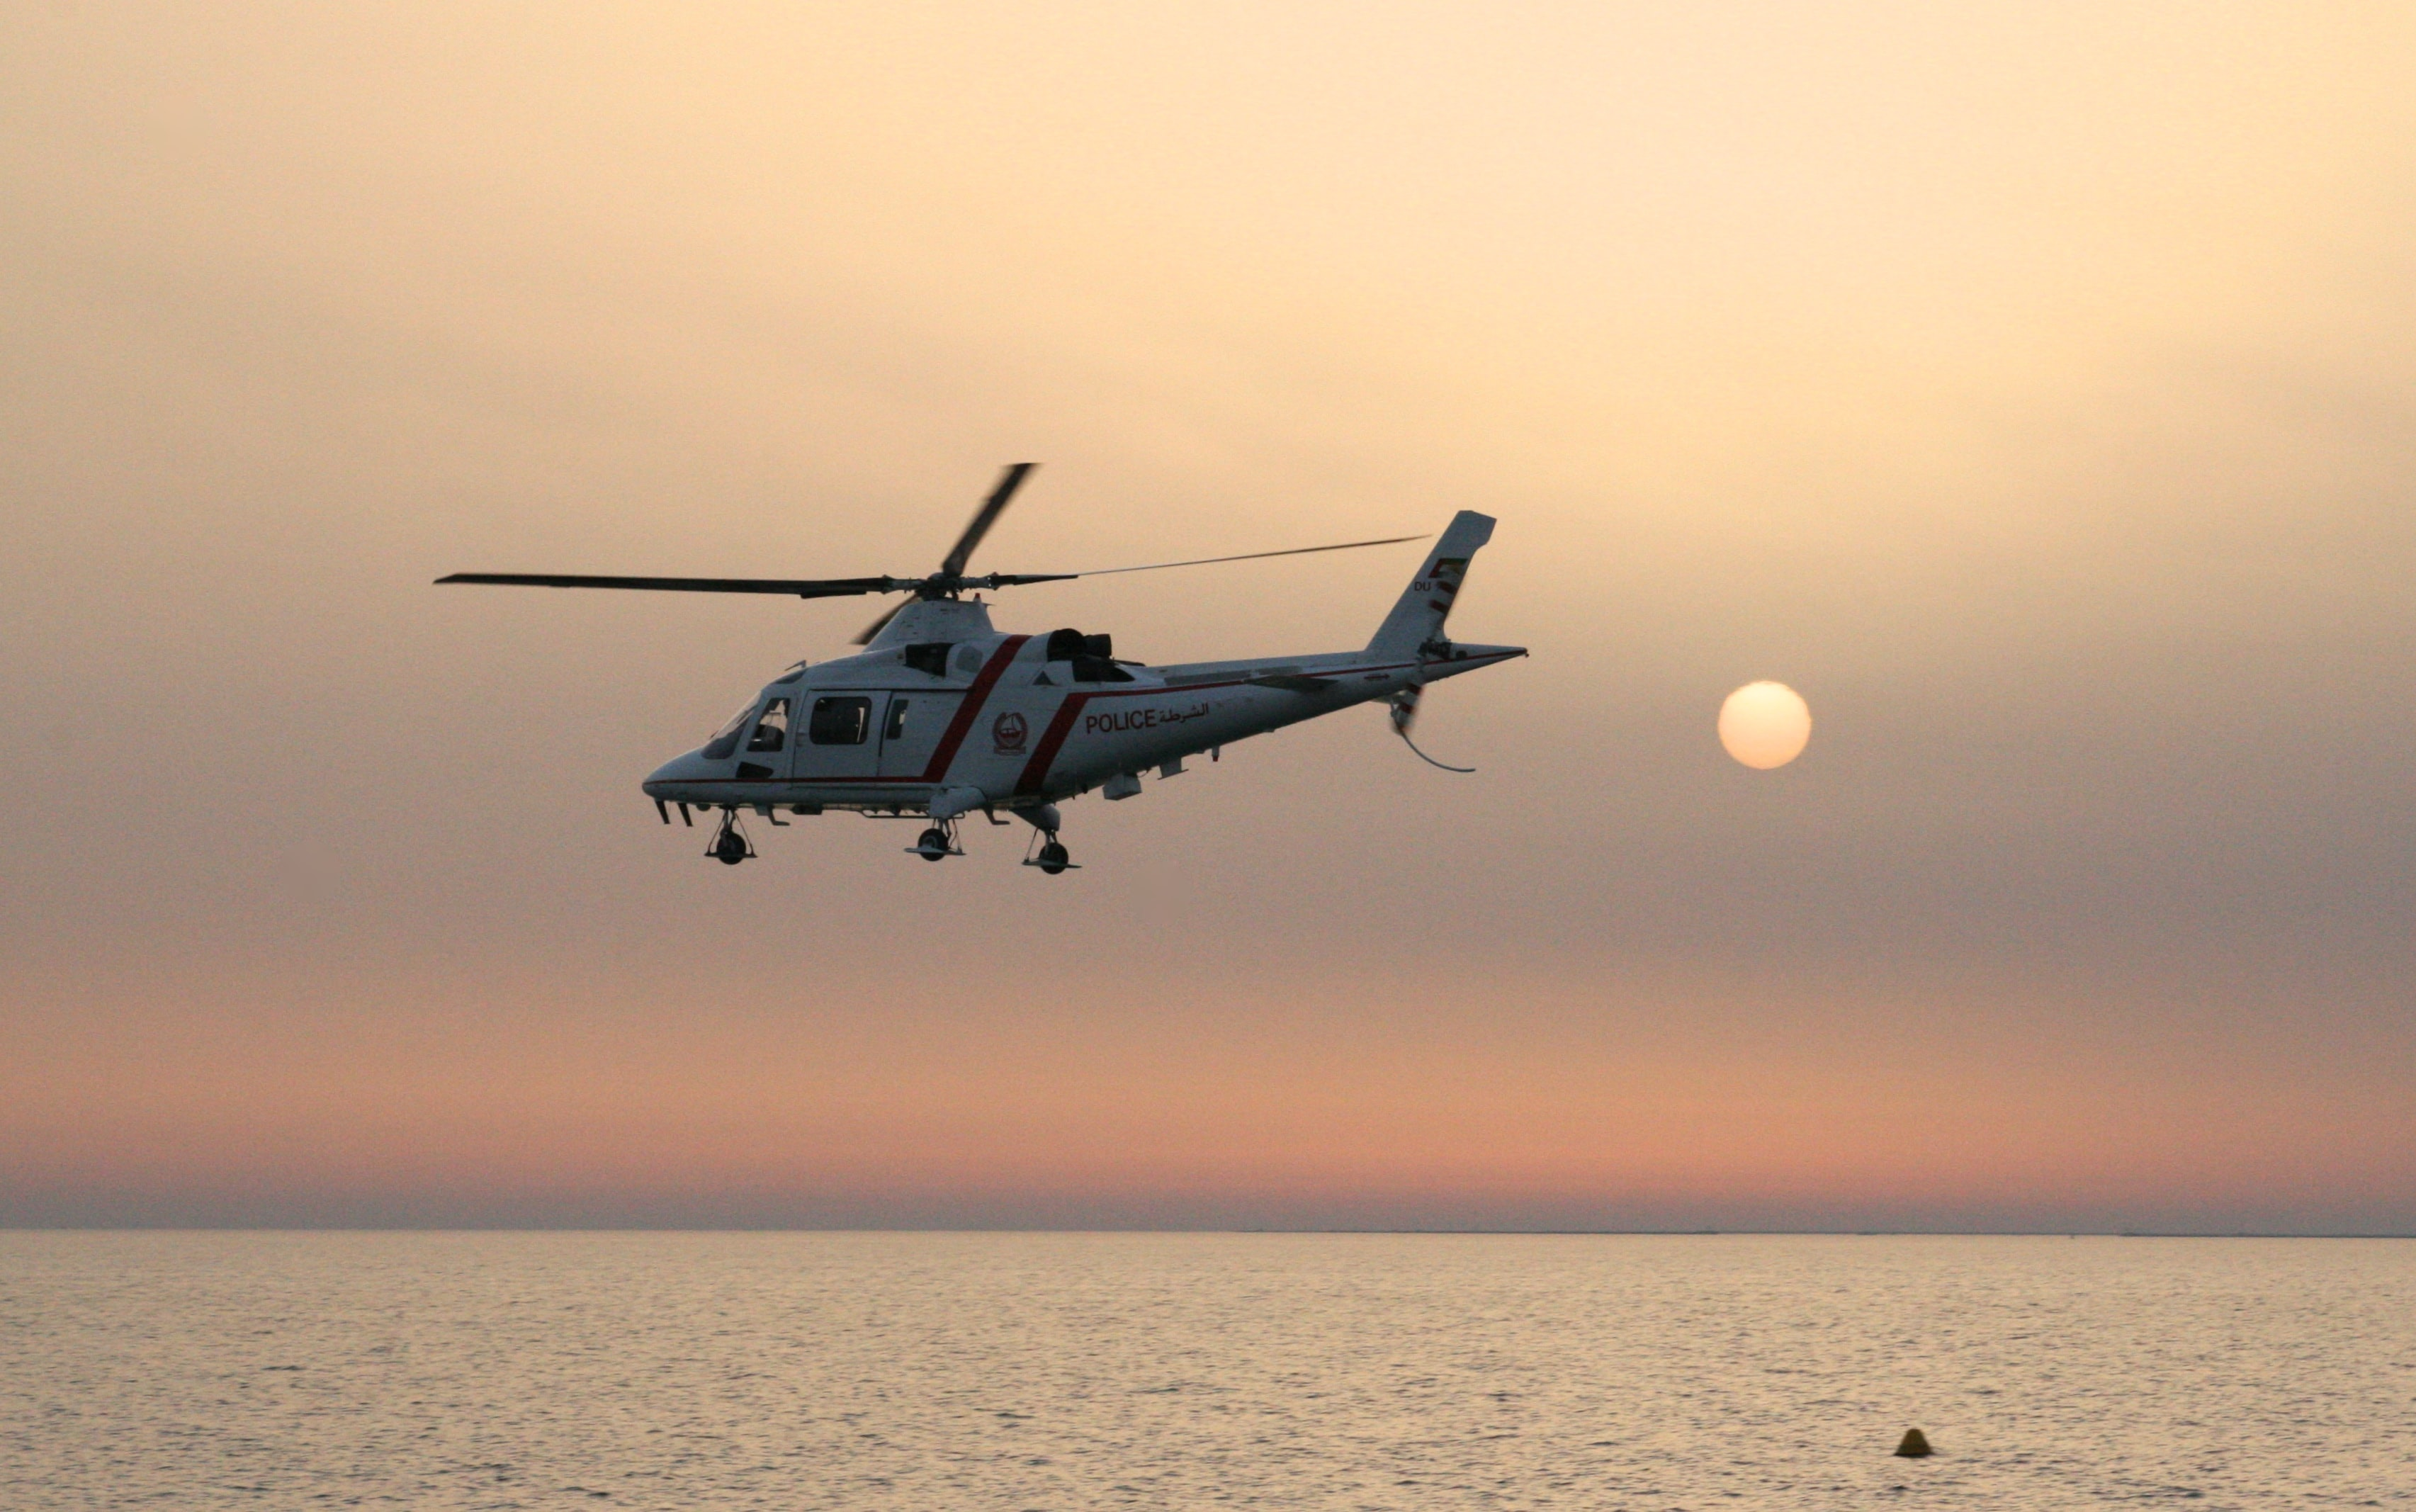 A helicopter flying over the water during sunset.